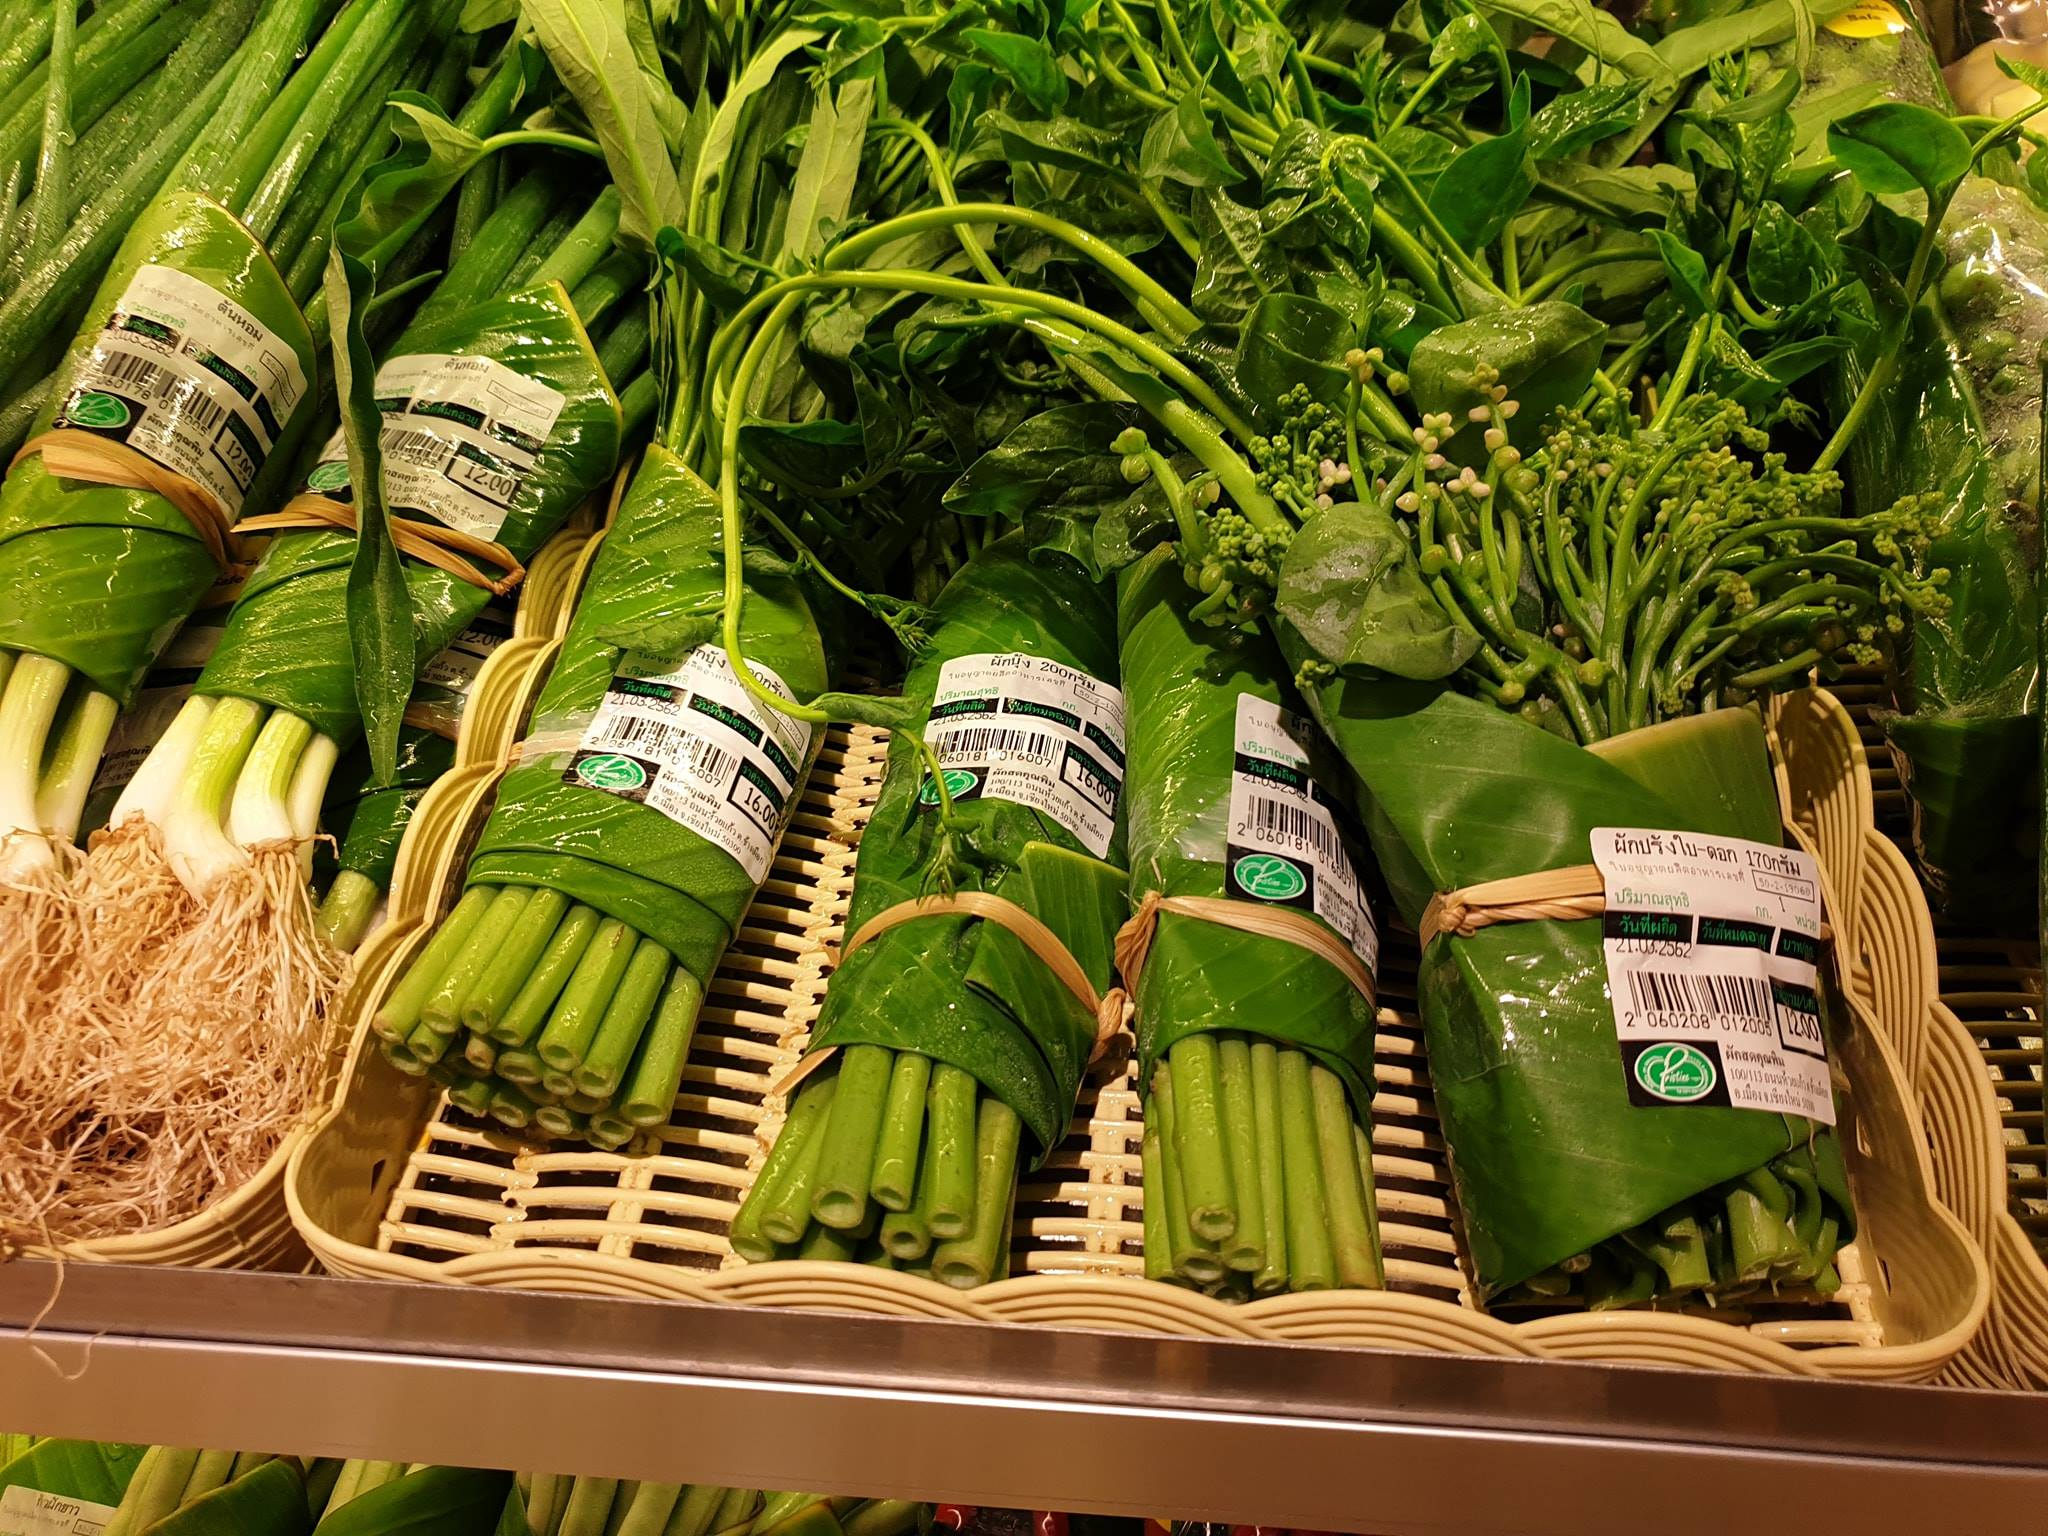 Innovative Supermarket Uses Banana Leaf Packaging to Avoid